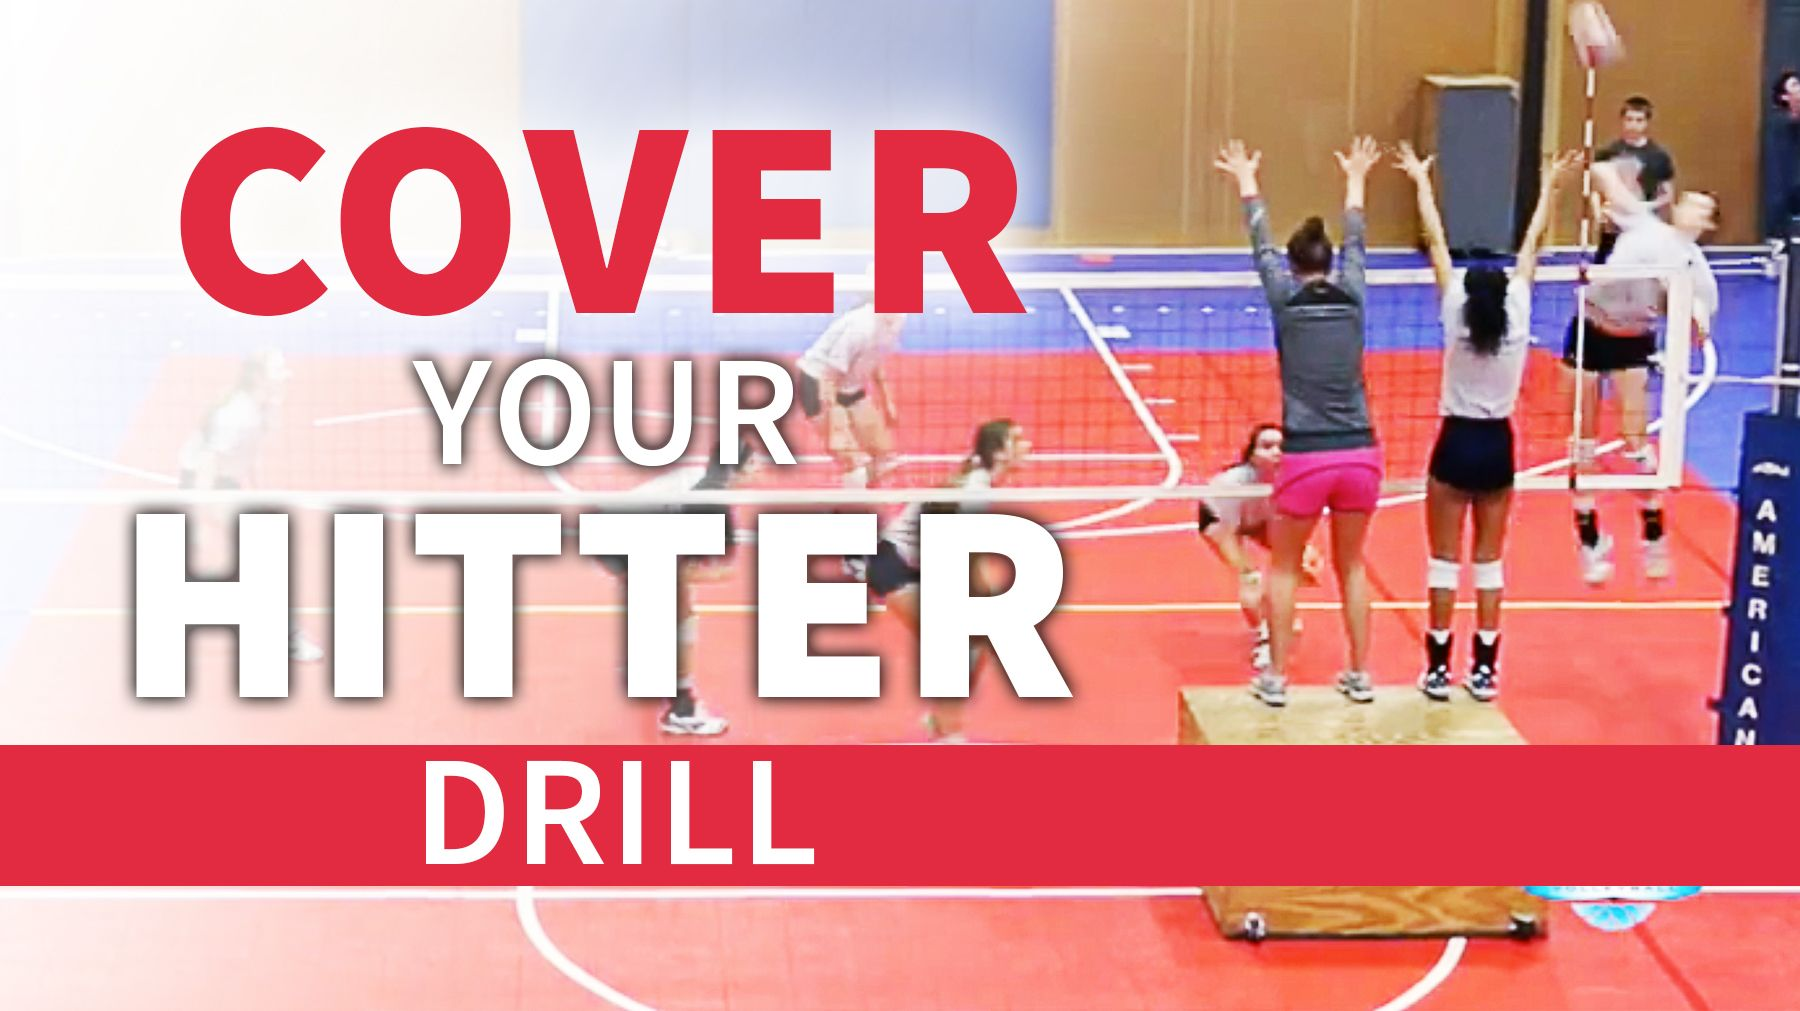 Cover Your Hitter Drill The Art Of Coaching Volleyball Coaching Volleyball Volleyball Skills Volleyball Practice